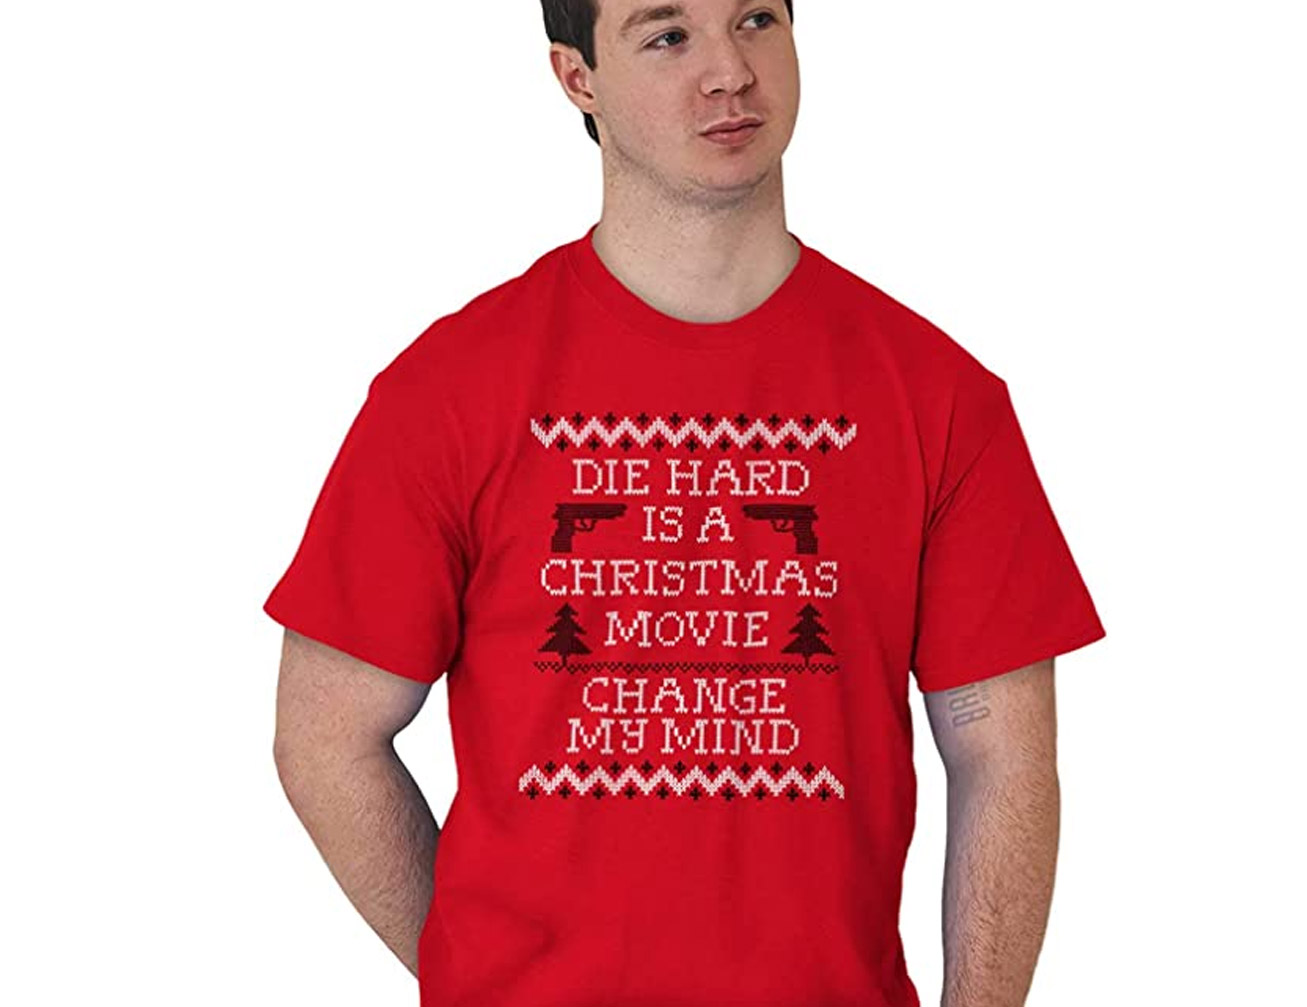 Die Hard Is a Christmas Movie - Change My Mind Shirt